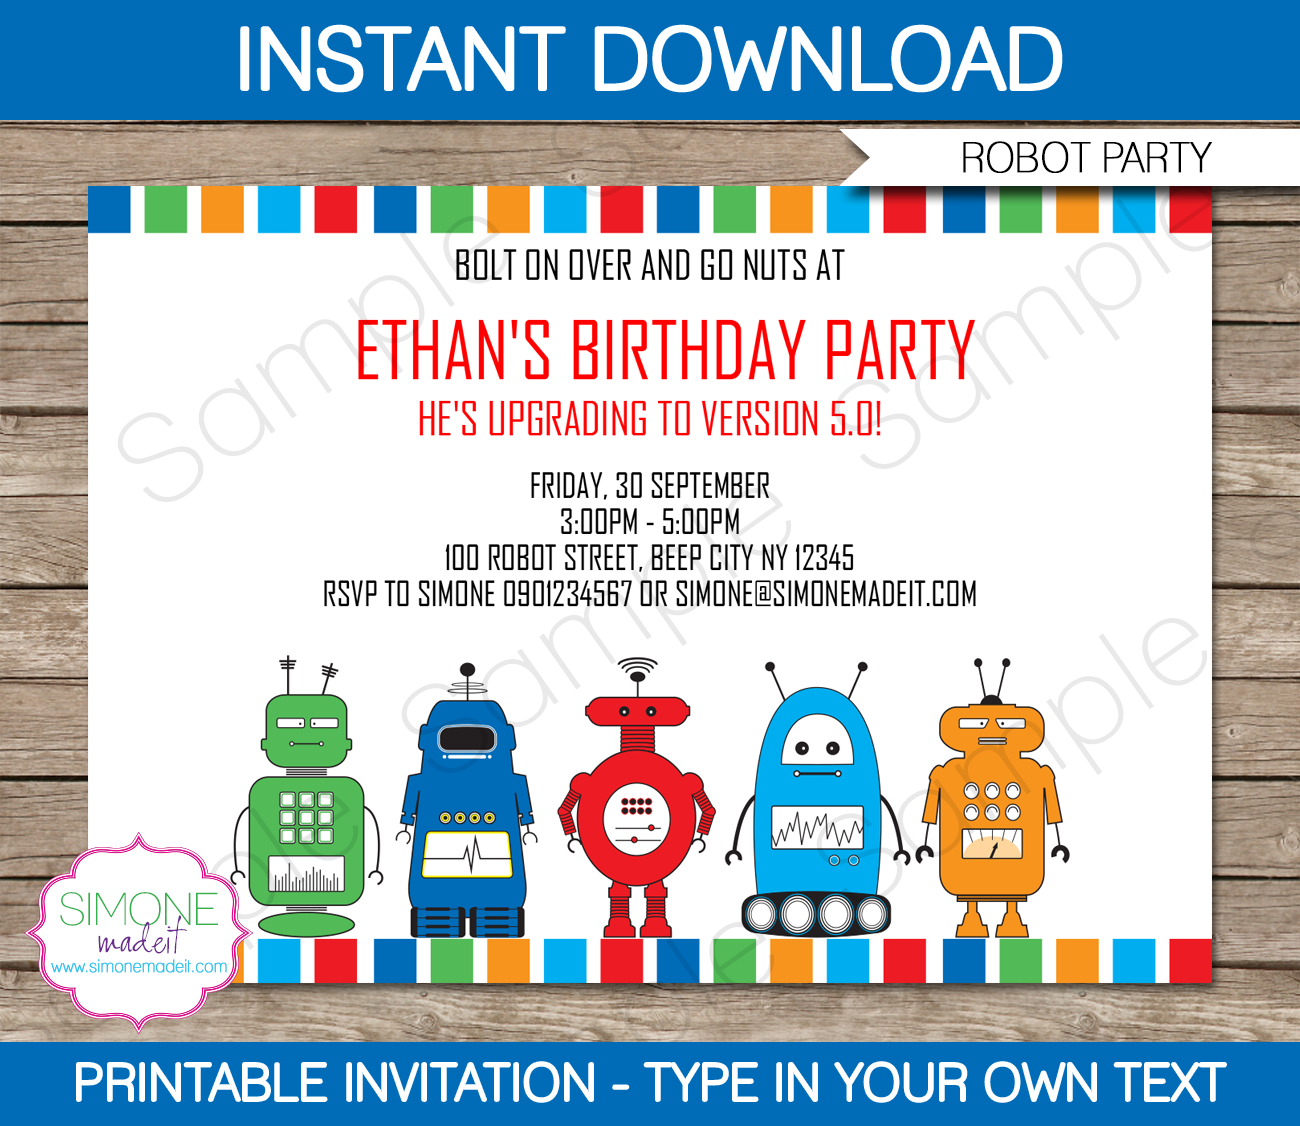 Robot Party Invitations Template | Party invitations, Birthdays and ...